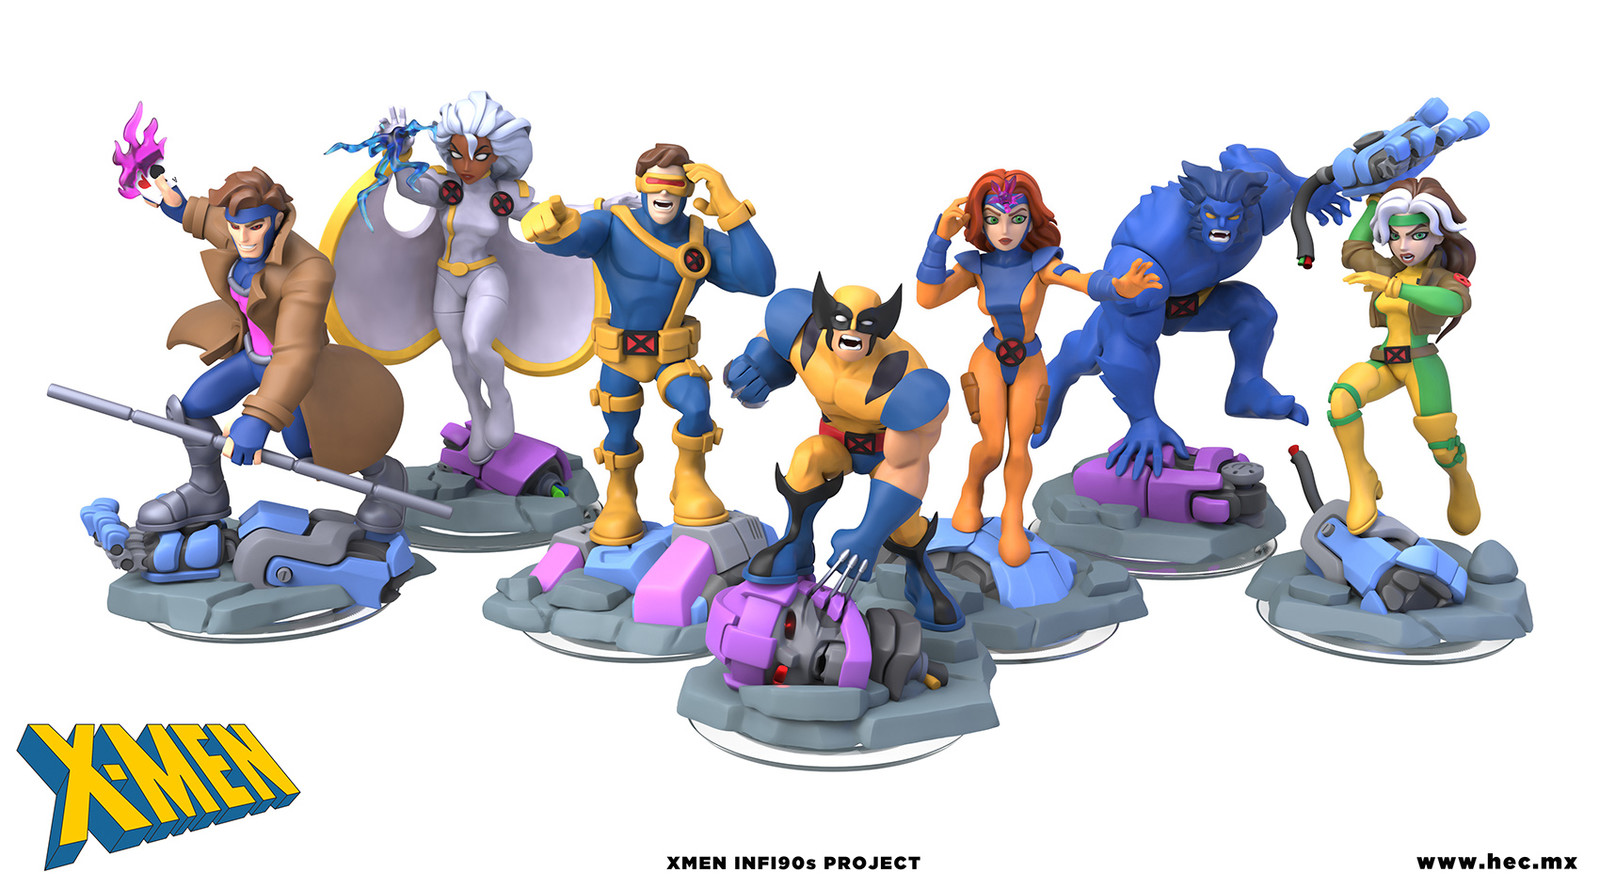 X-Men Inf90s Project And Making Of